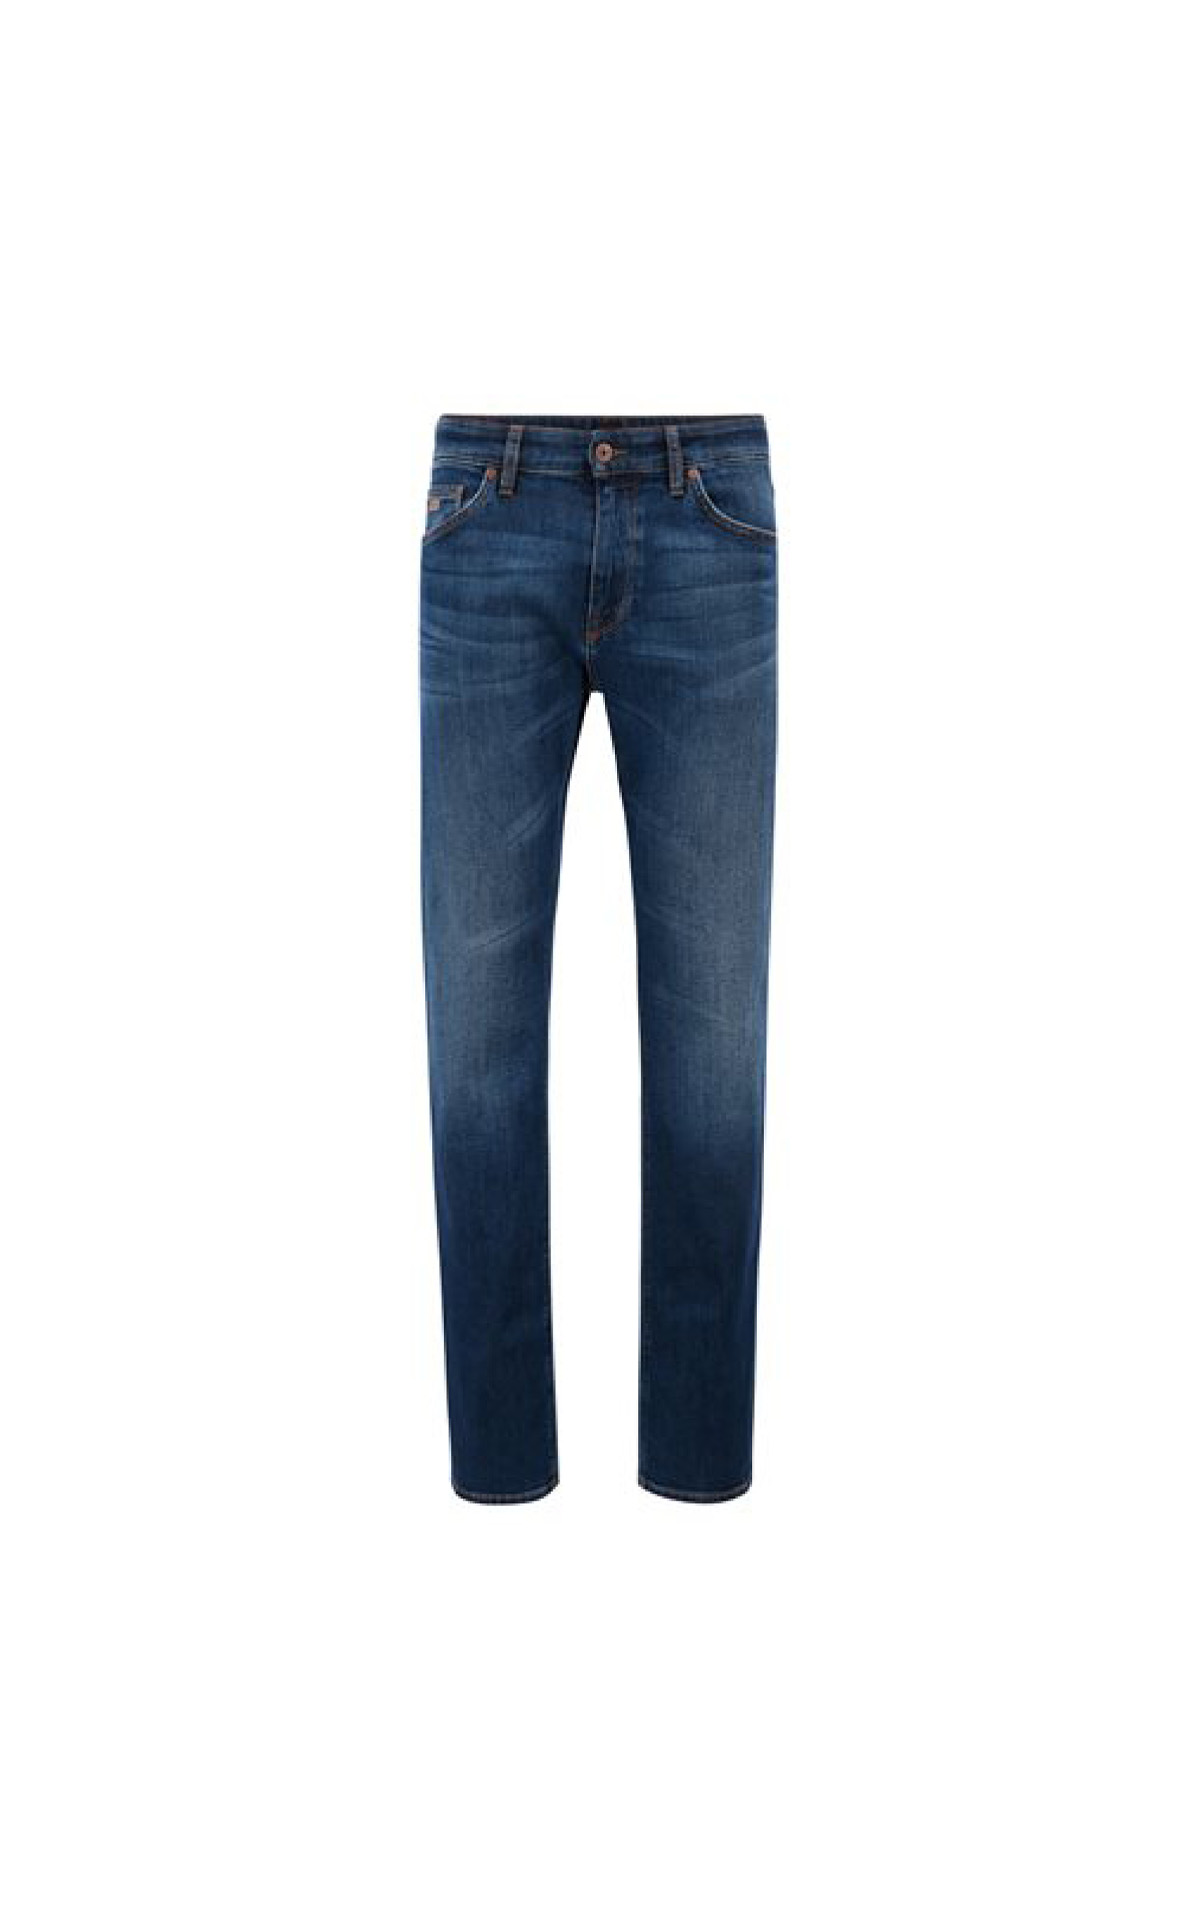 Boss Maine3 Regular-fit Jeans in Medium Blue Comfort Stretch Denim at The Bicester Village Shopping Collection